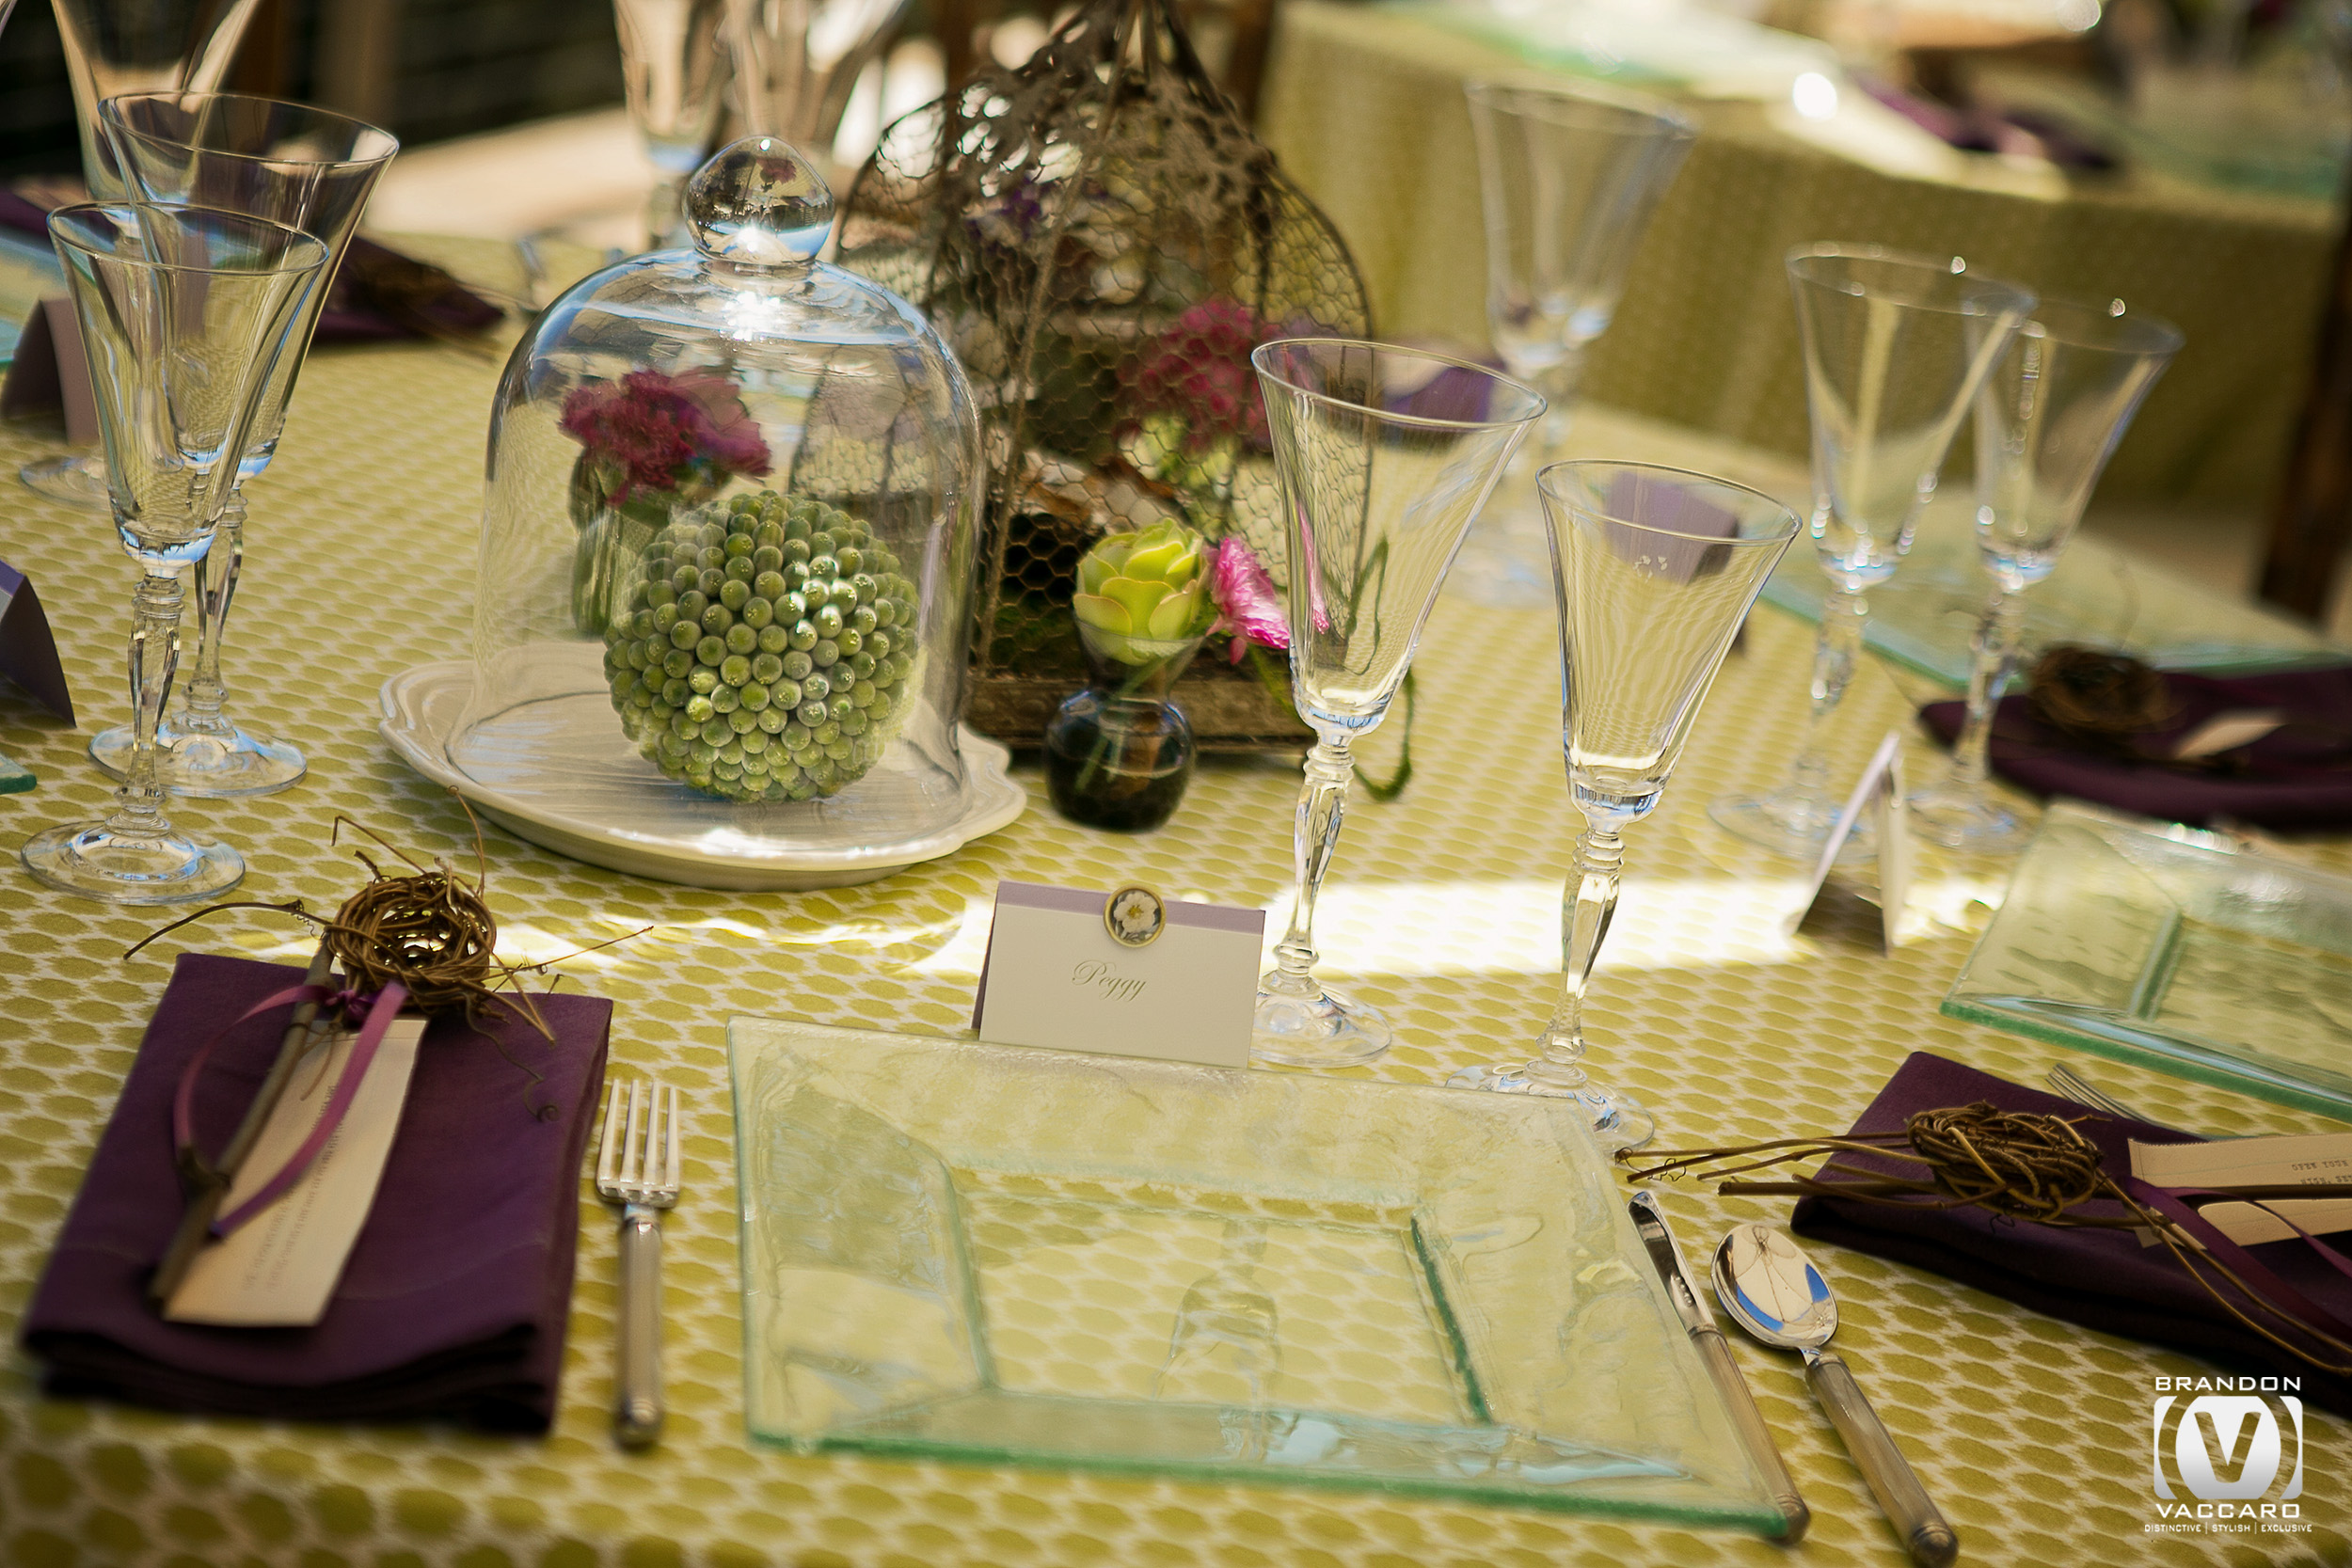 portola-valley-bridal-shower-event-photographer.jpg